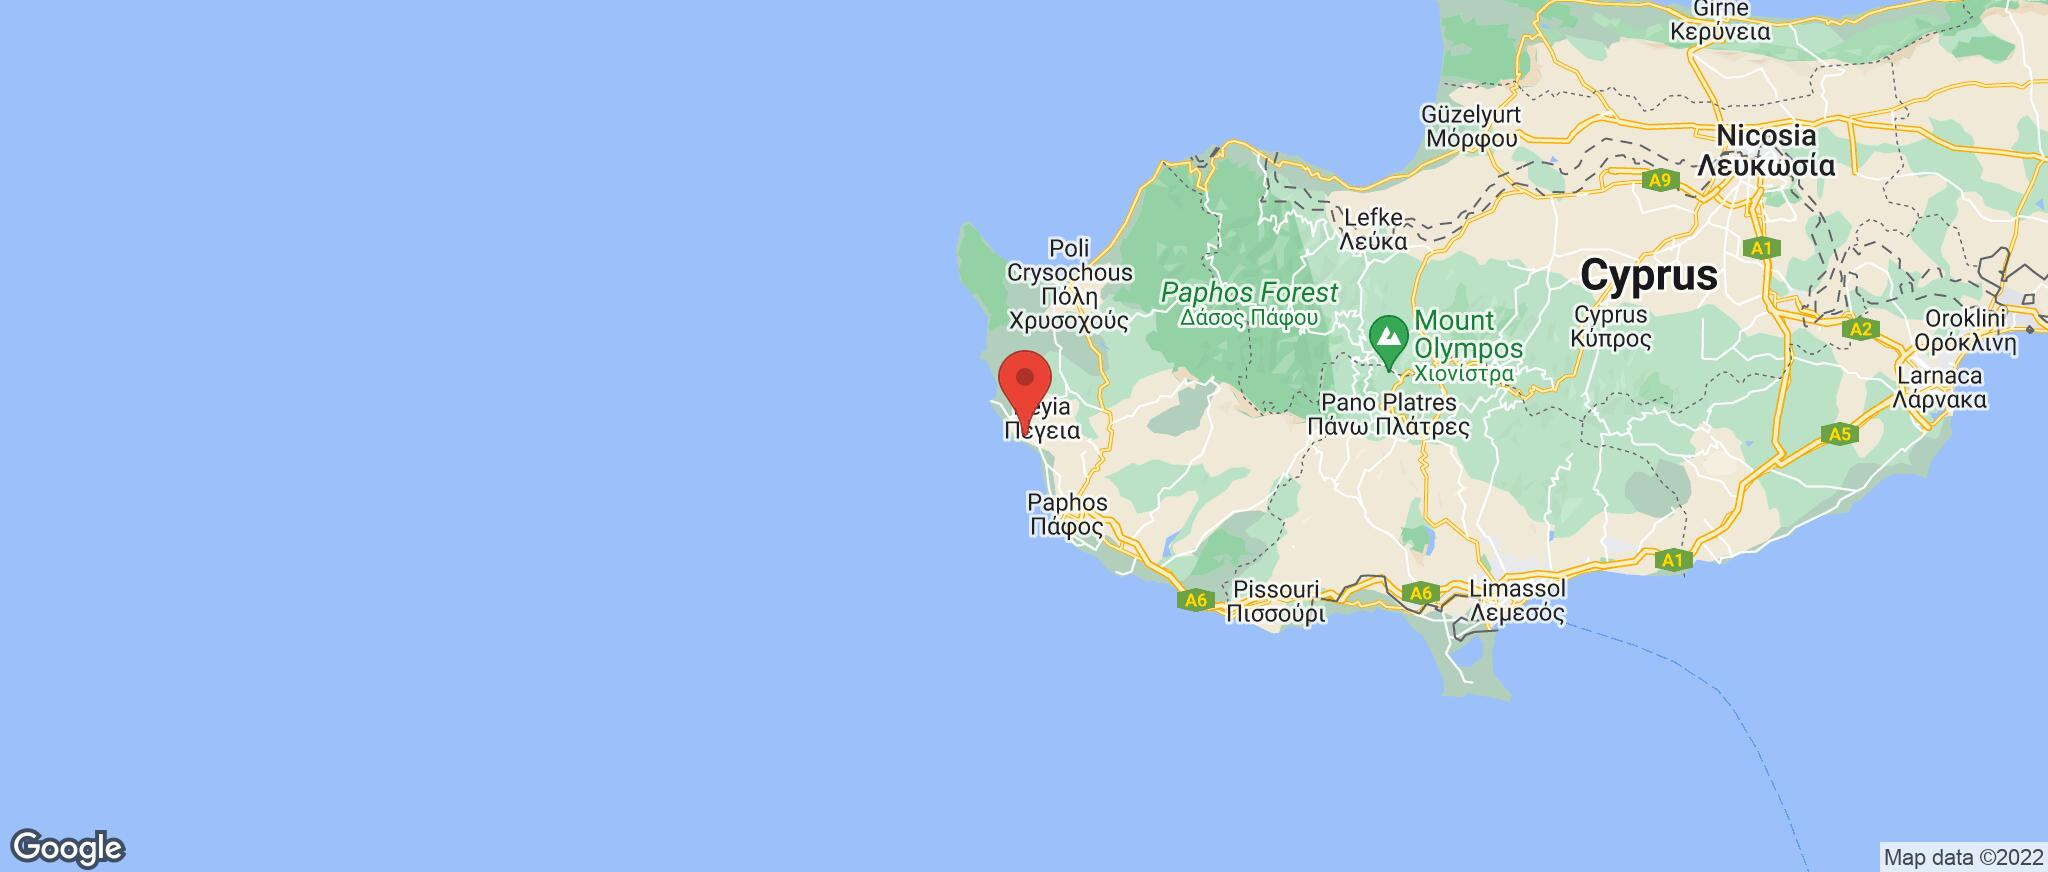 Map showing the location of Coral Bay